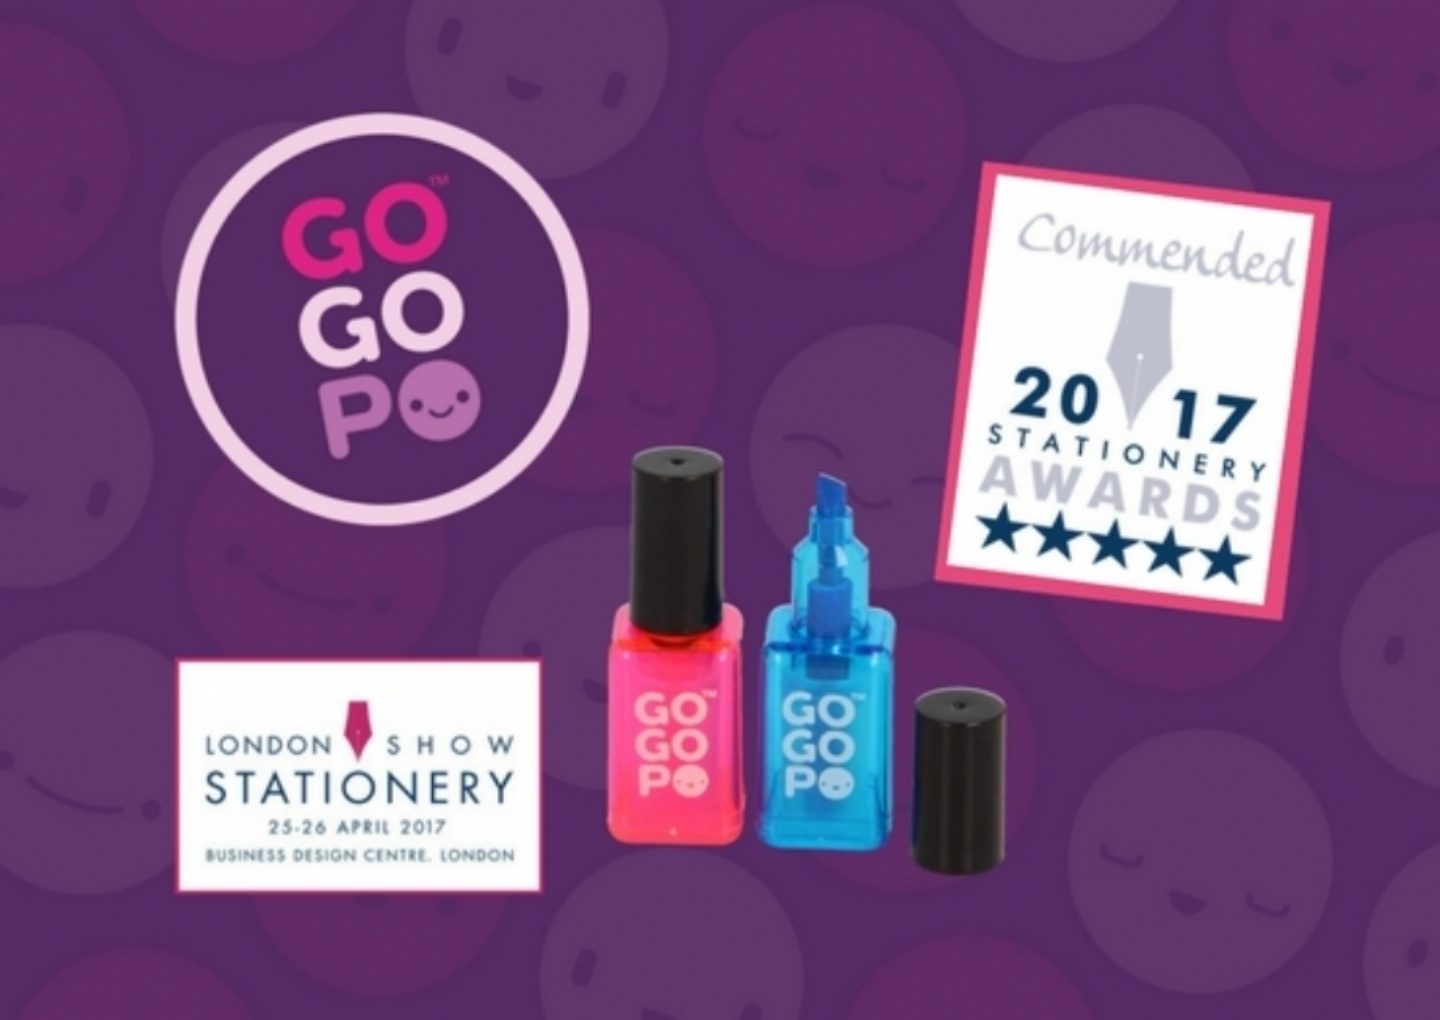 GOGOPO Commended at 2017 Stationery Awards